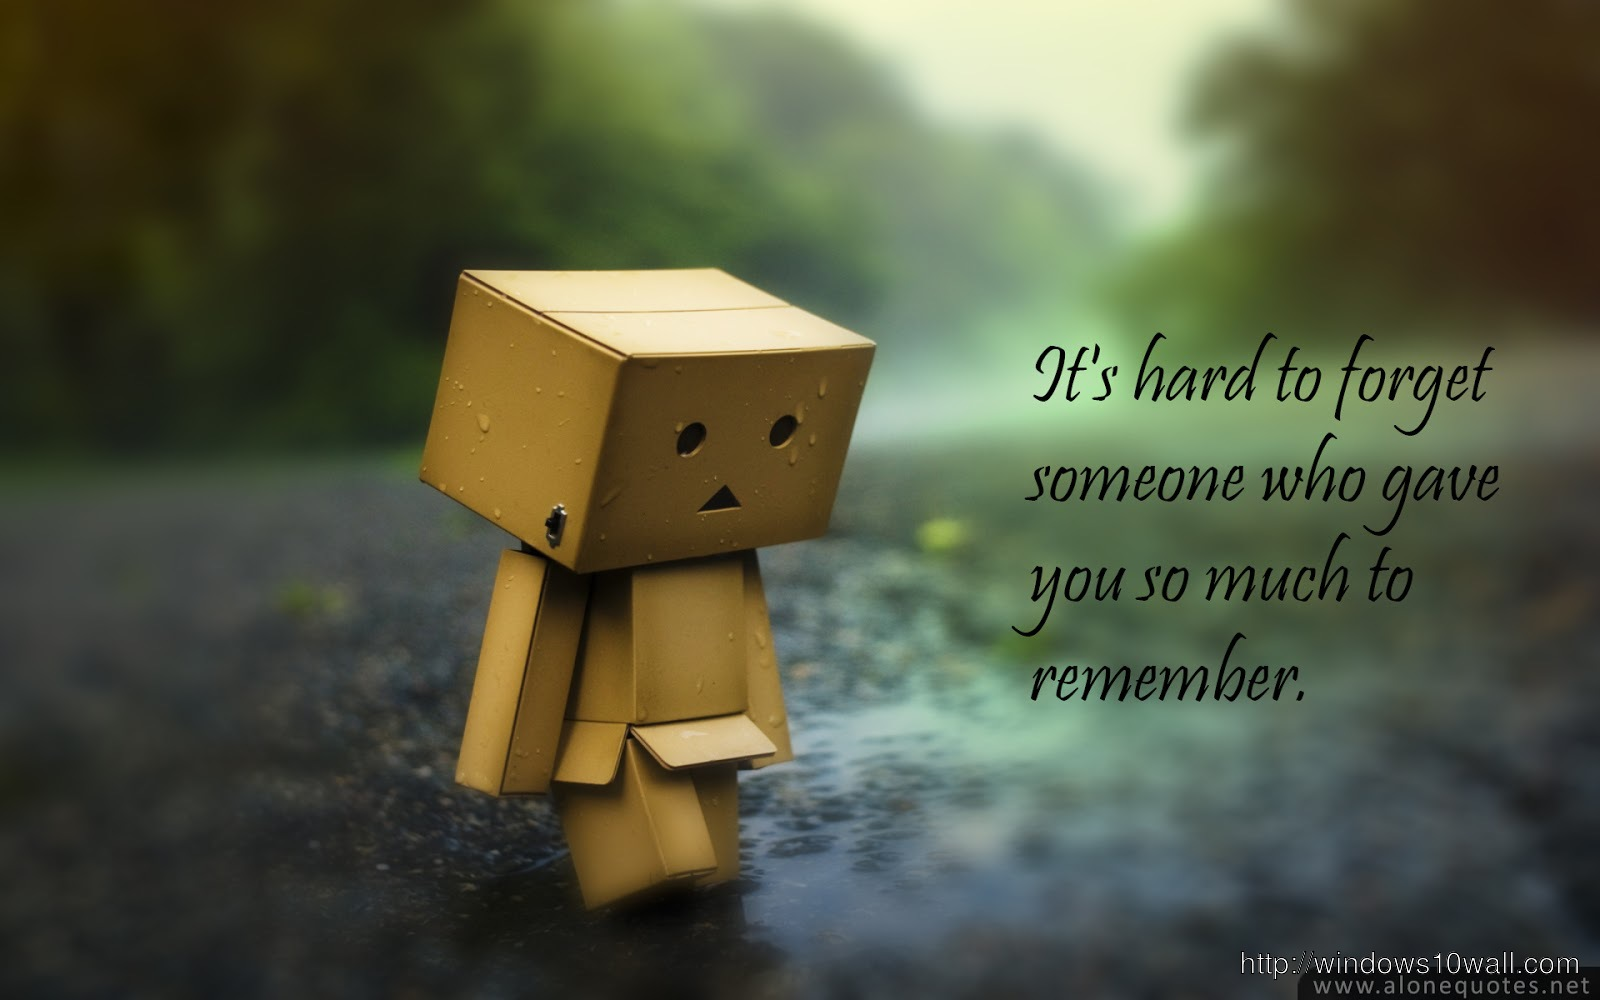 alone hd wallpaper with quote download free